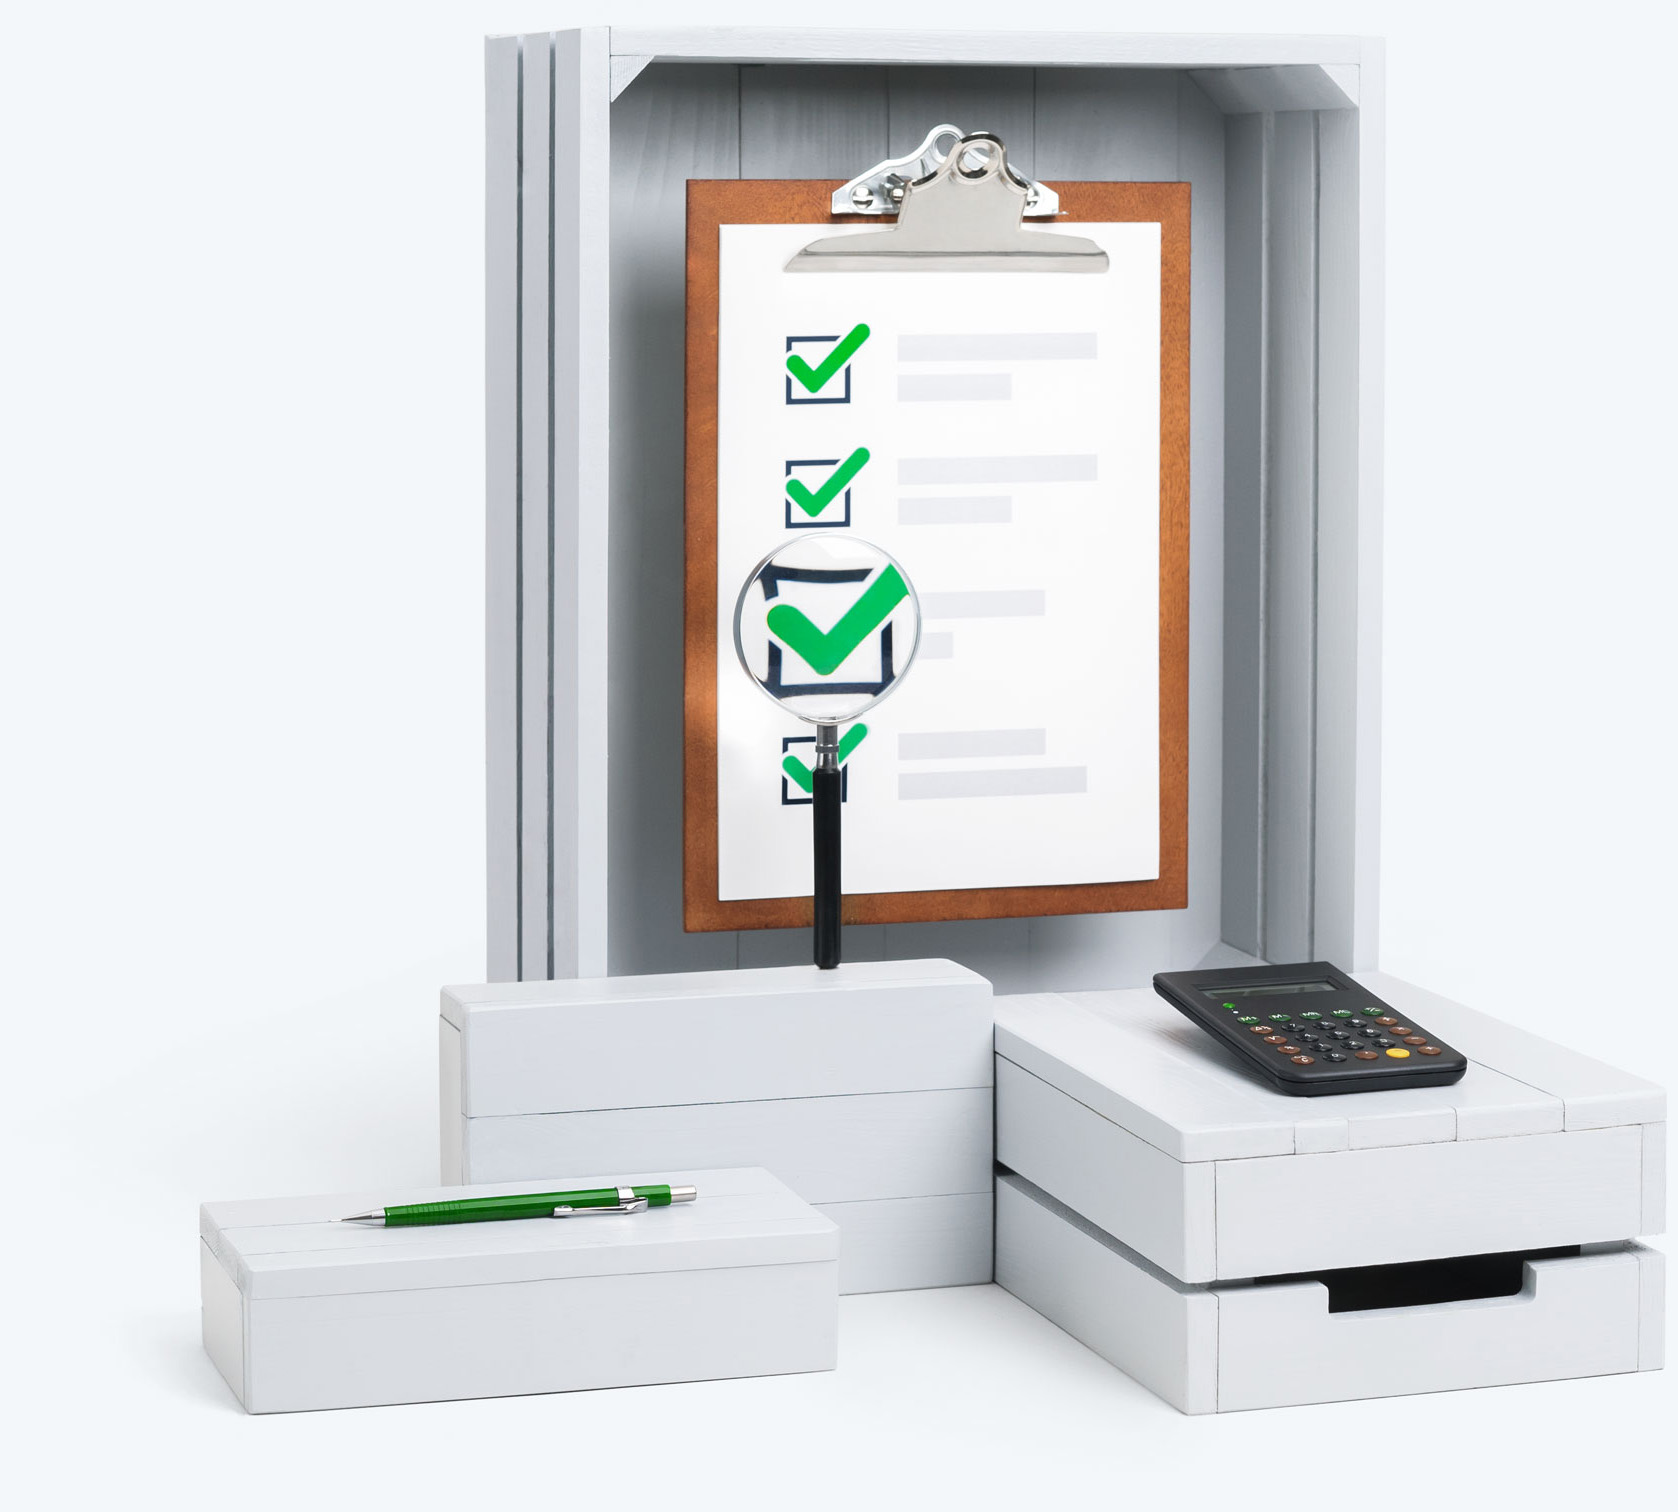 A clipboard standing on white boxes displaying magnifying glass and green ticks